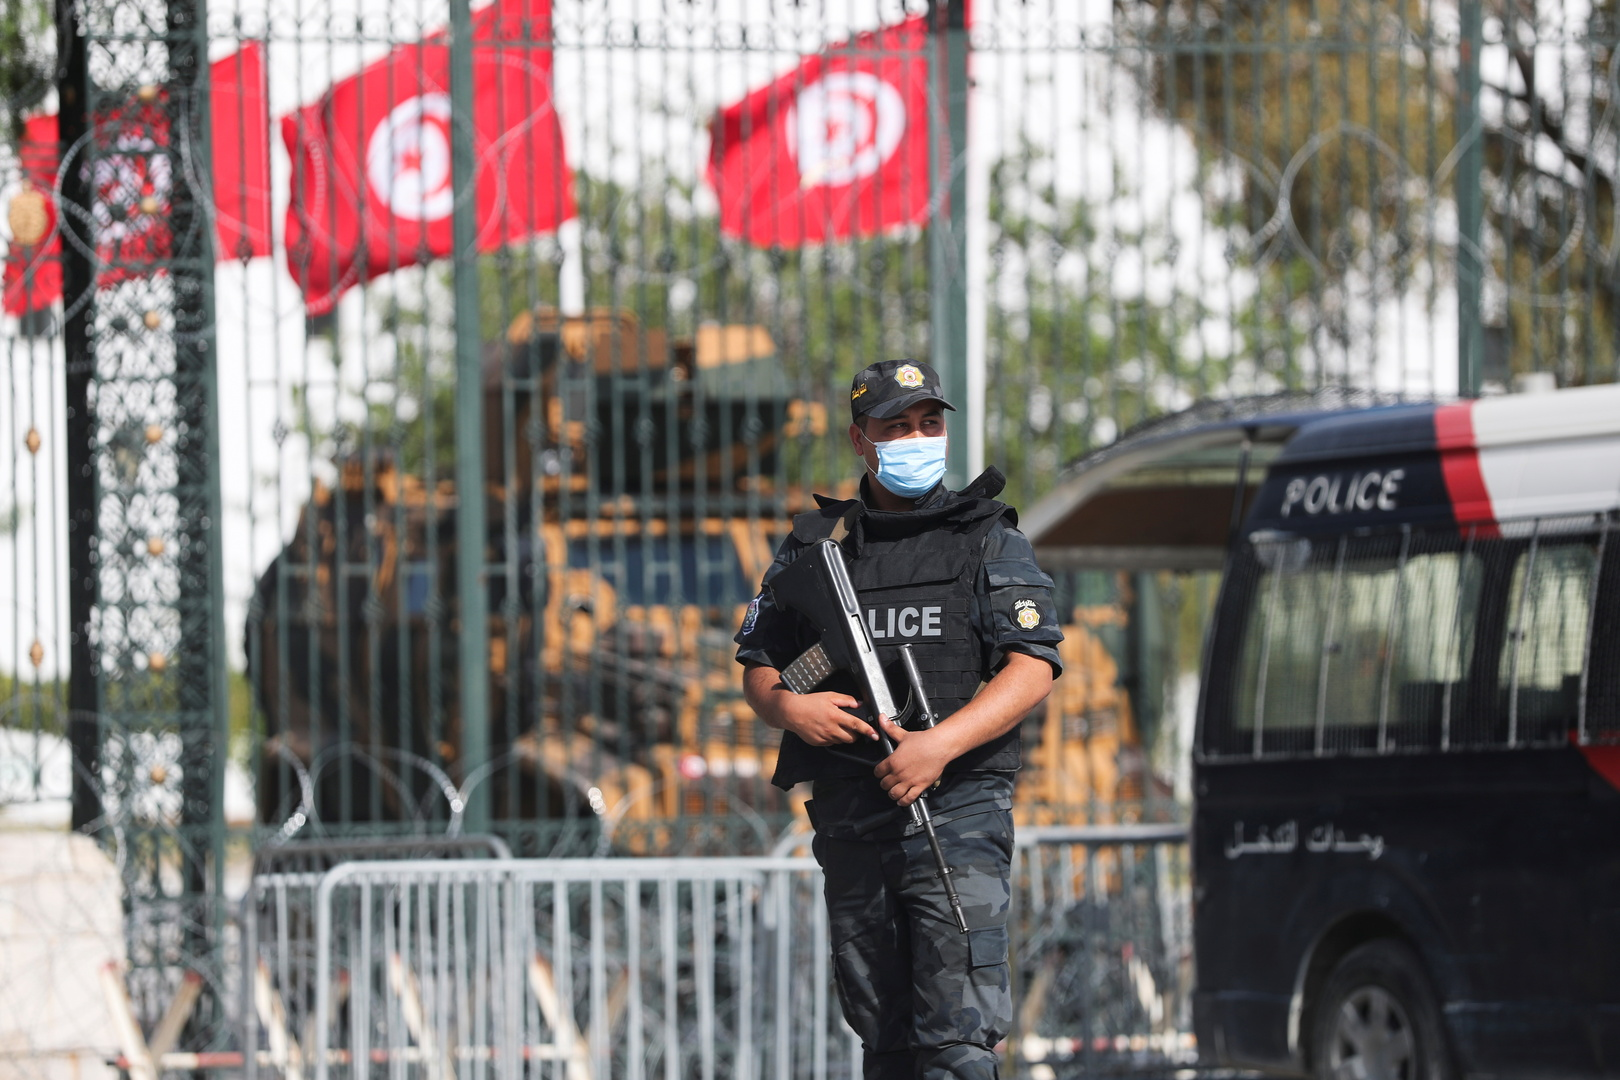 Tunisia..Security forces surround the Dean of Lawyers to arrest lawyer Mahdi Zagrouba in a case